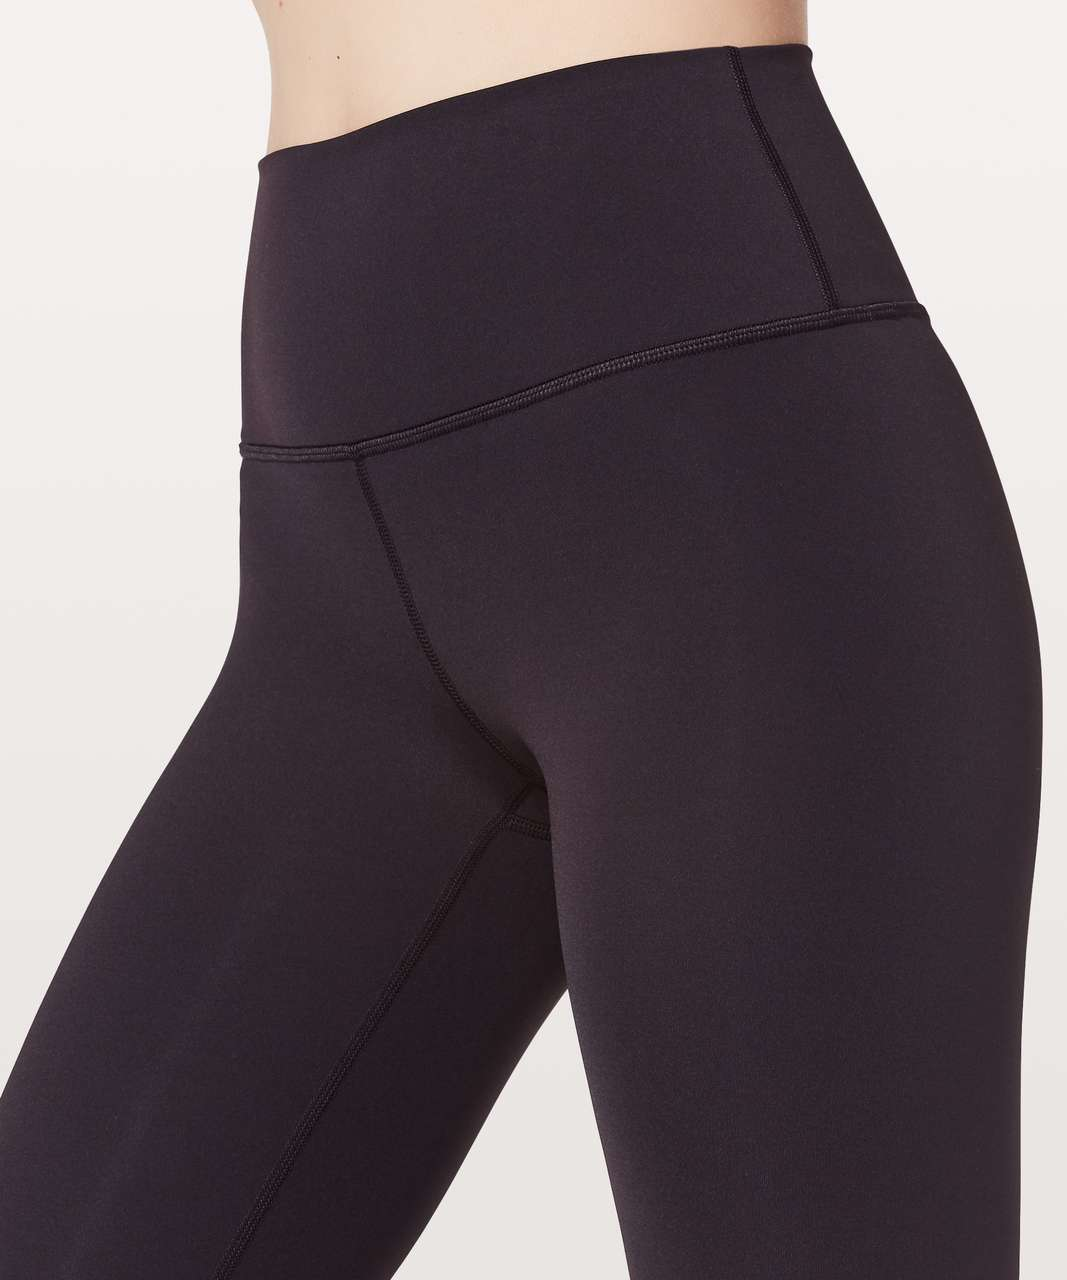 "Lululemon Wunder Under Hi-Rise 7/8 Tight *Full-On Luxtreme 25"" - Deep Phantom"